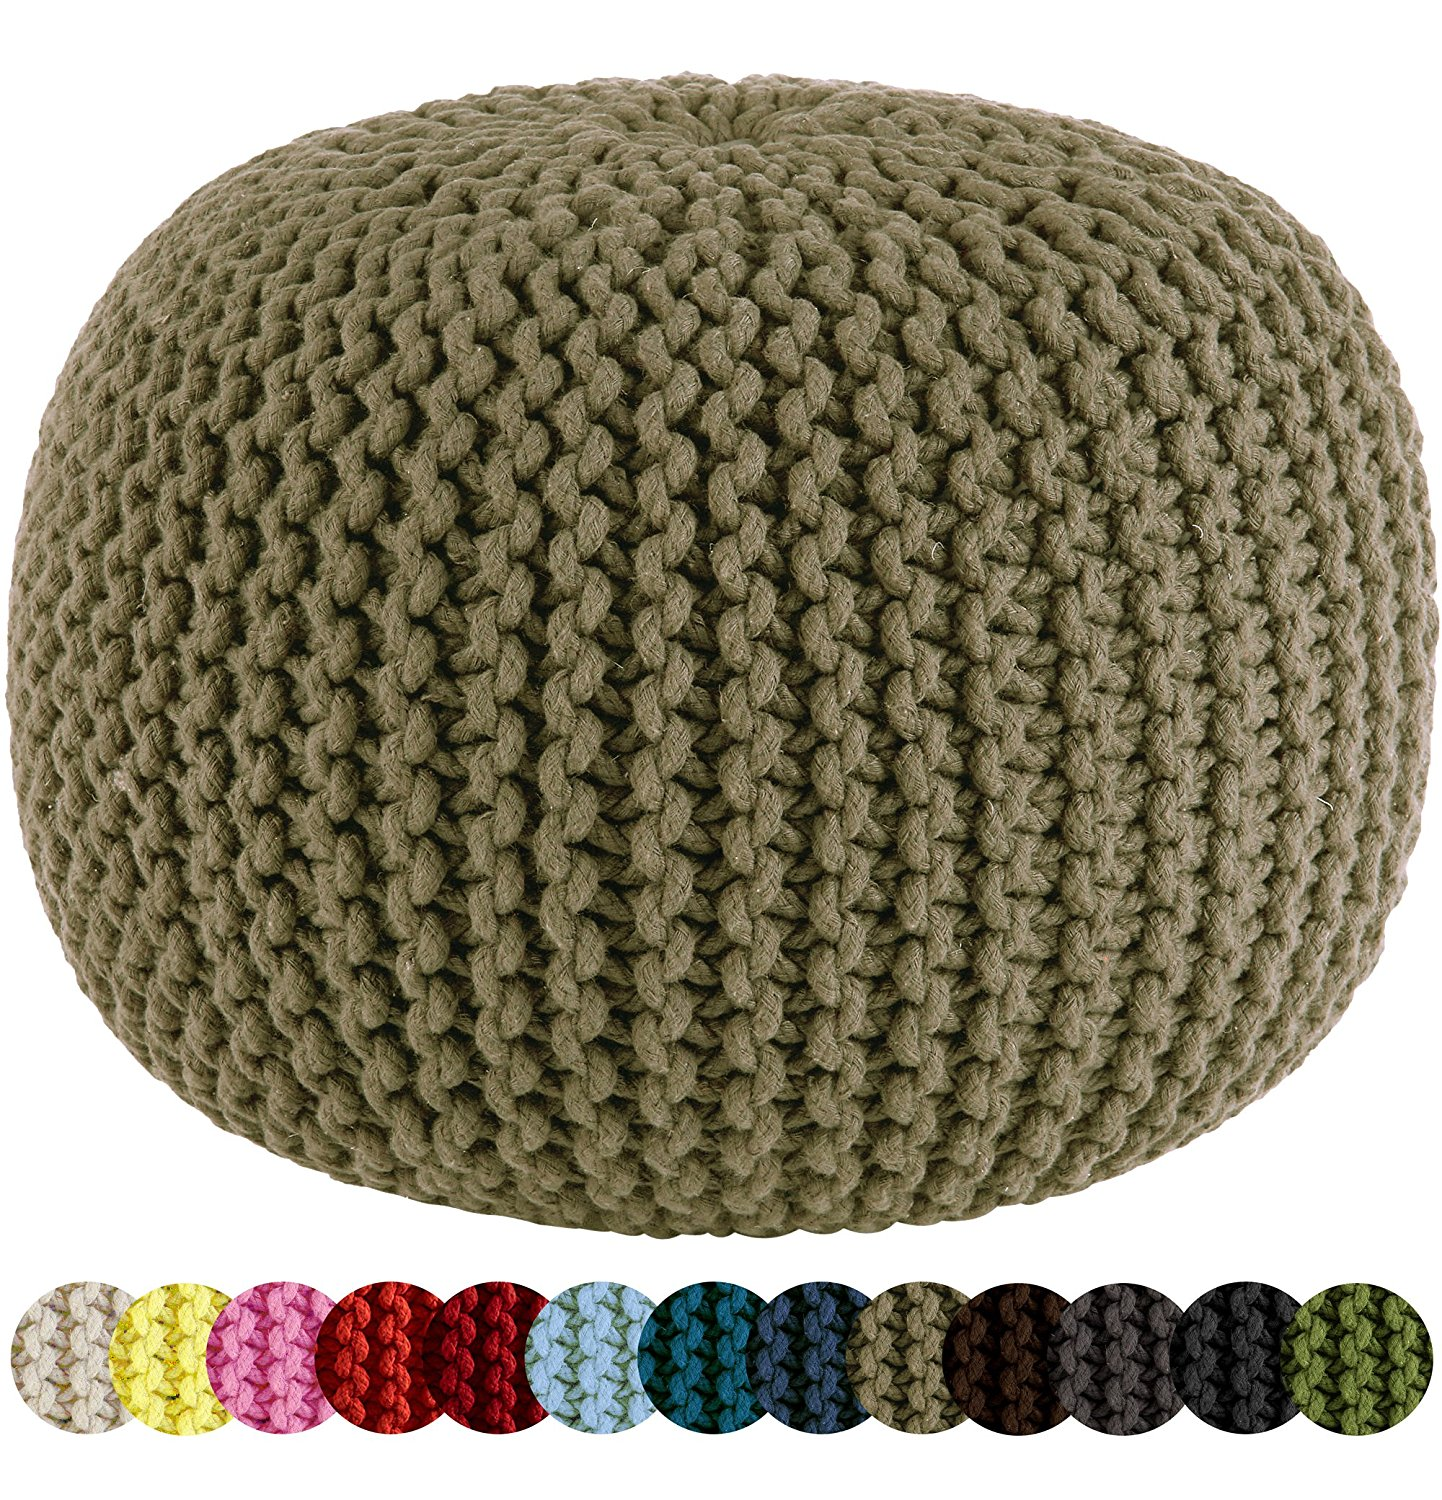 knitted pouf amazon.com: cotton craft - hand knitted cable style dori pouf - beige - kkrpfyq